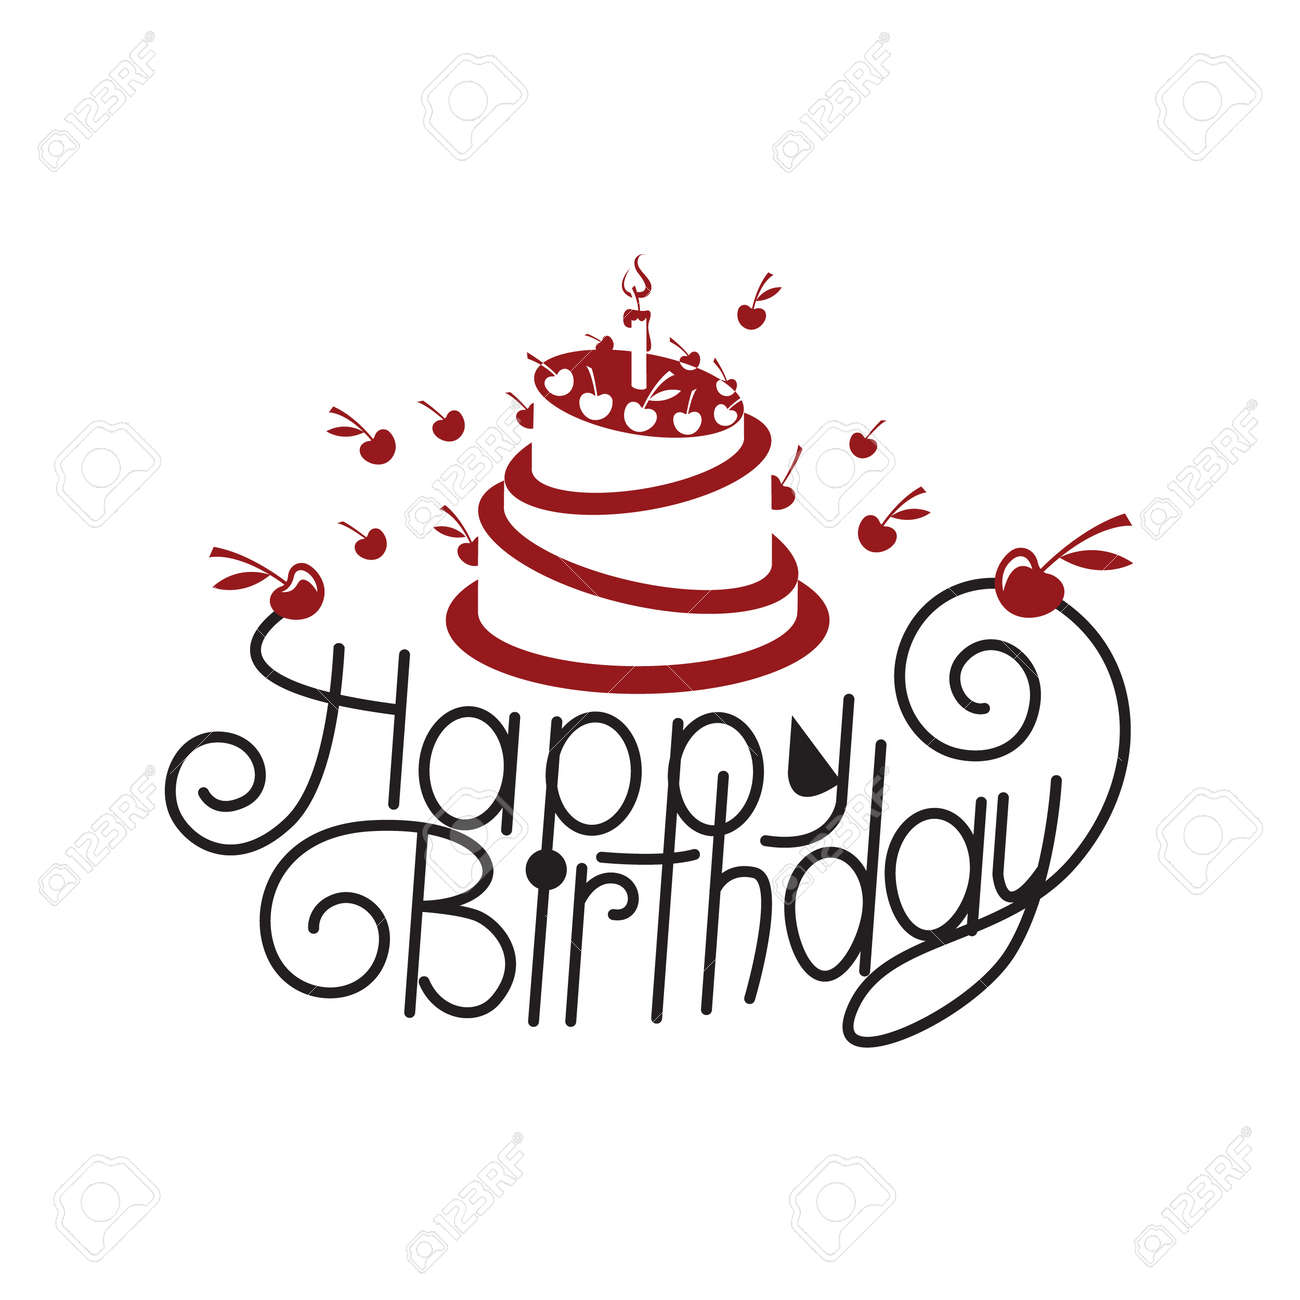 Happy Birthday Card Design With Cake Royalty Free Cliparts Vectors